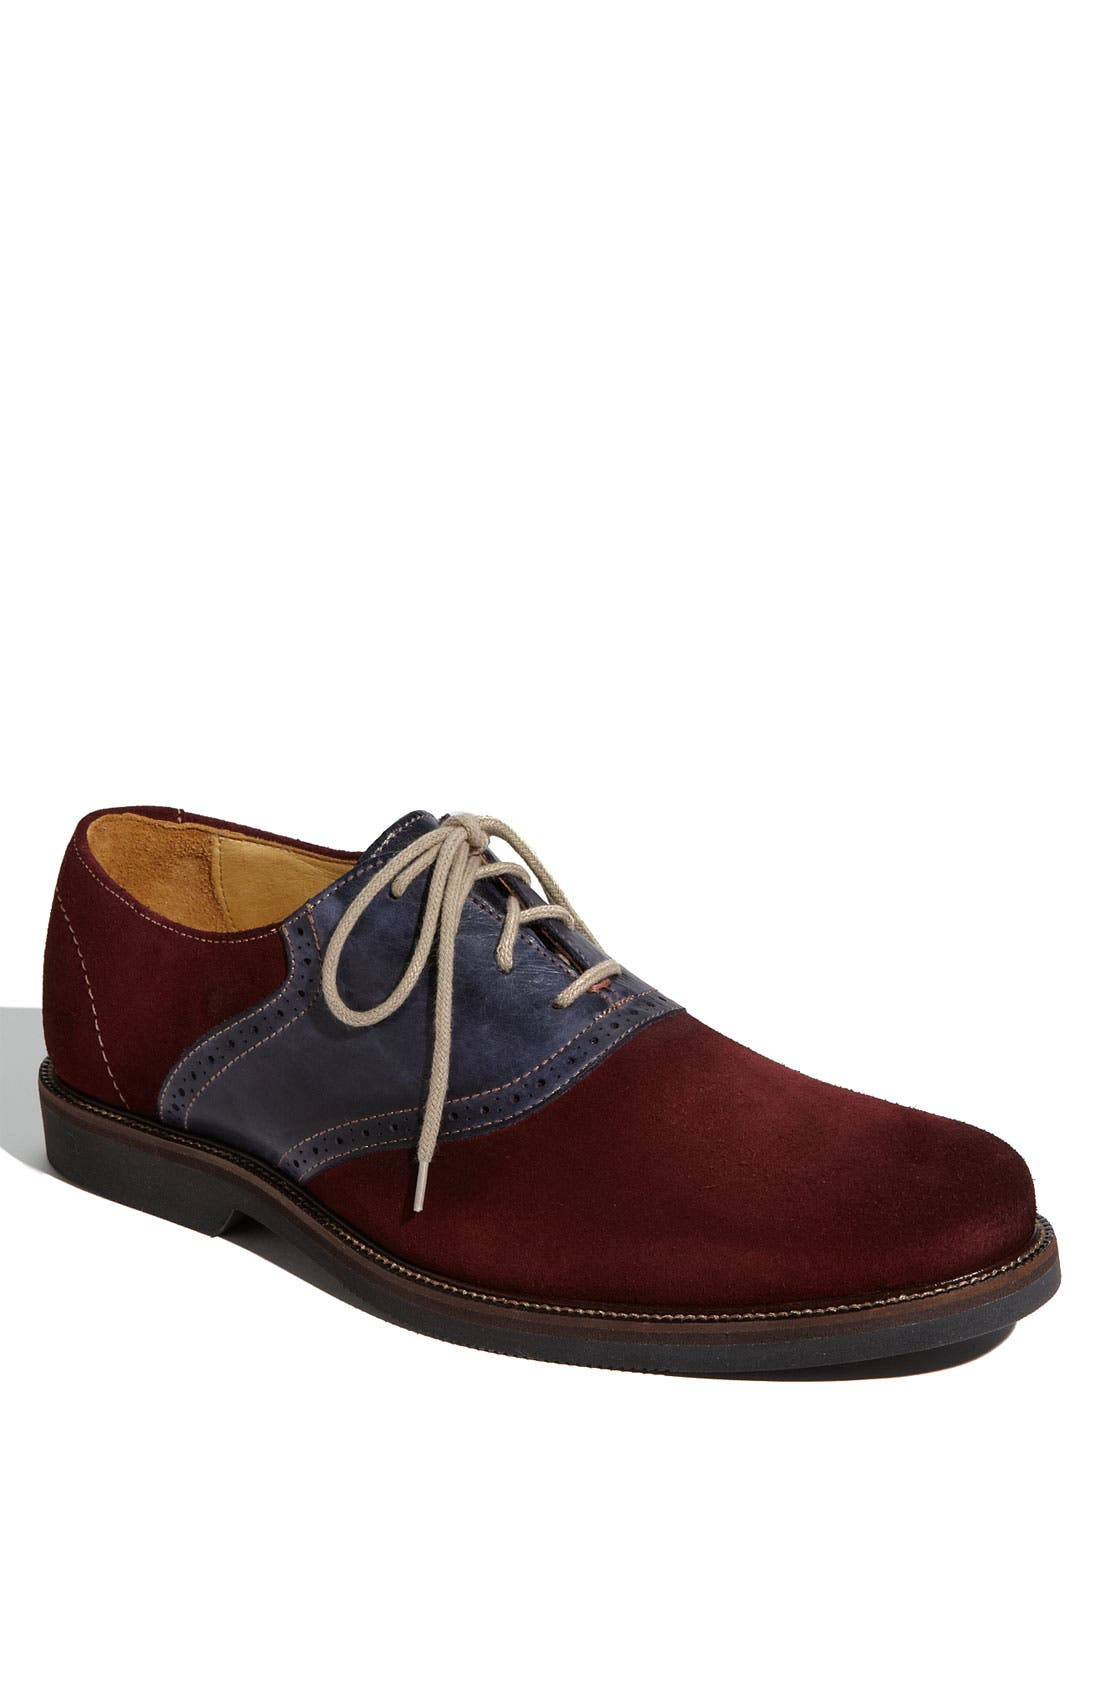 Main Image - 1901 'Saddle Up' Saddle Shoe (Men)